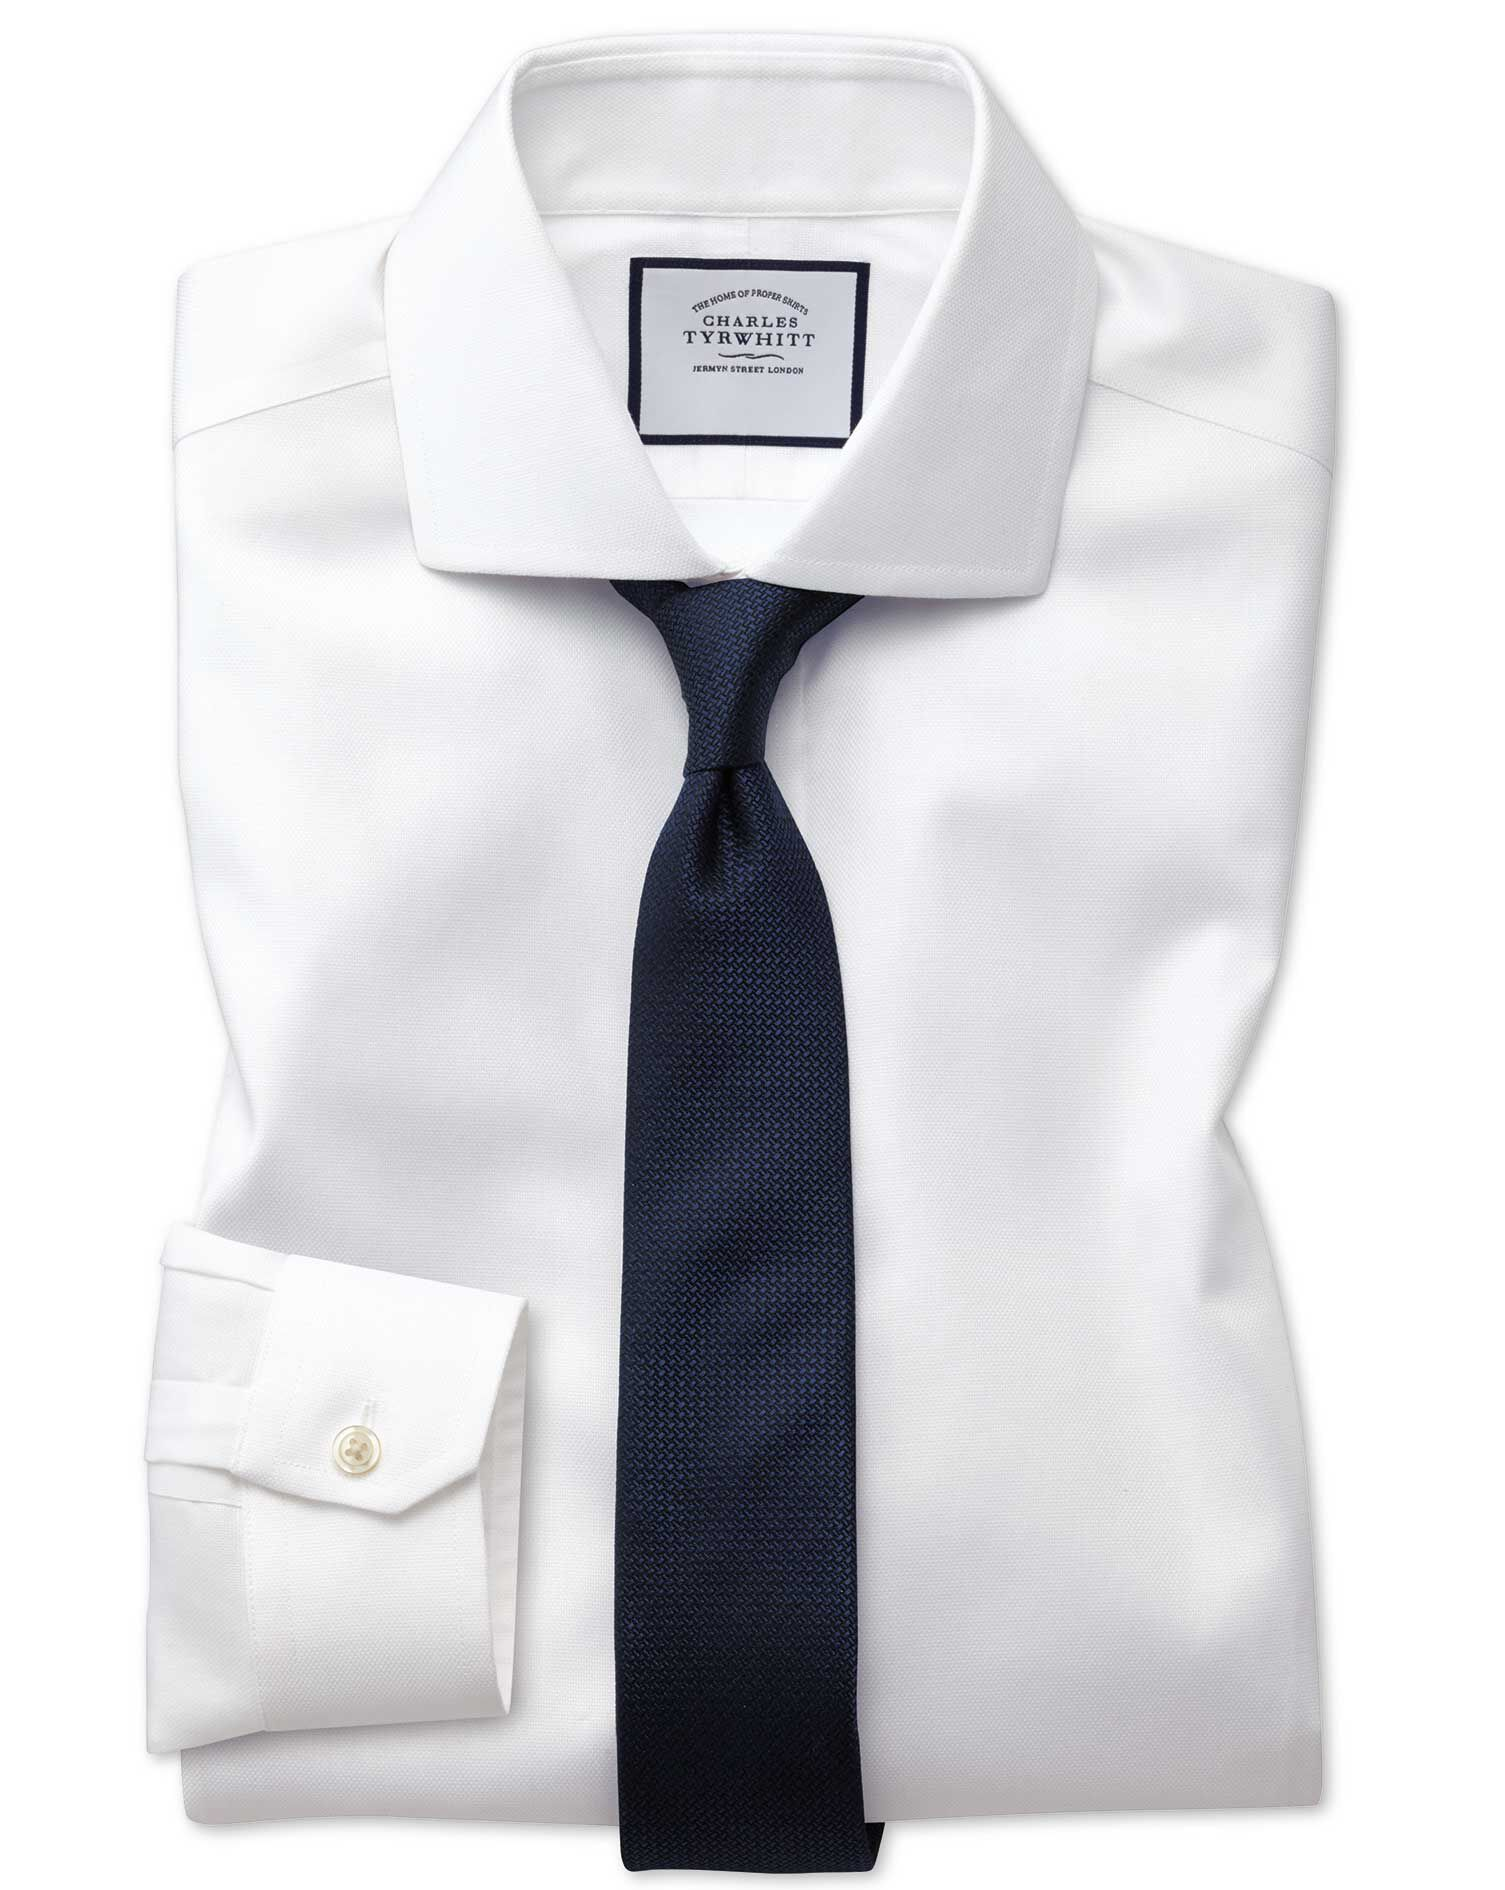 Super Slim Fit Non-Iron Cutaway Collar White Oxford Stretch Cotton Formal Shirt Single Cuff Size 15.